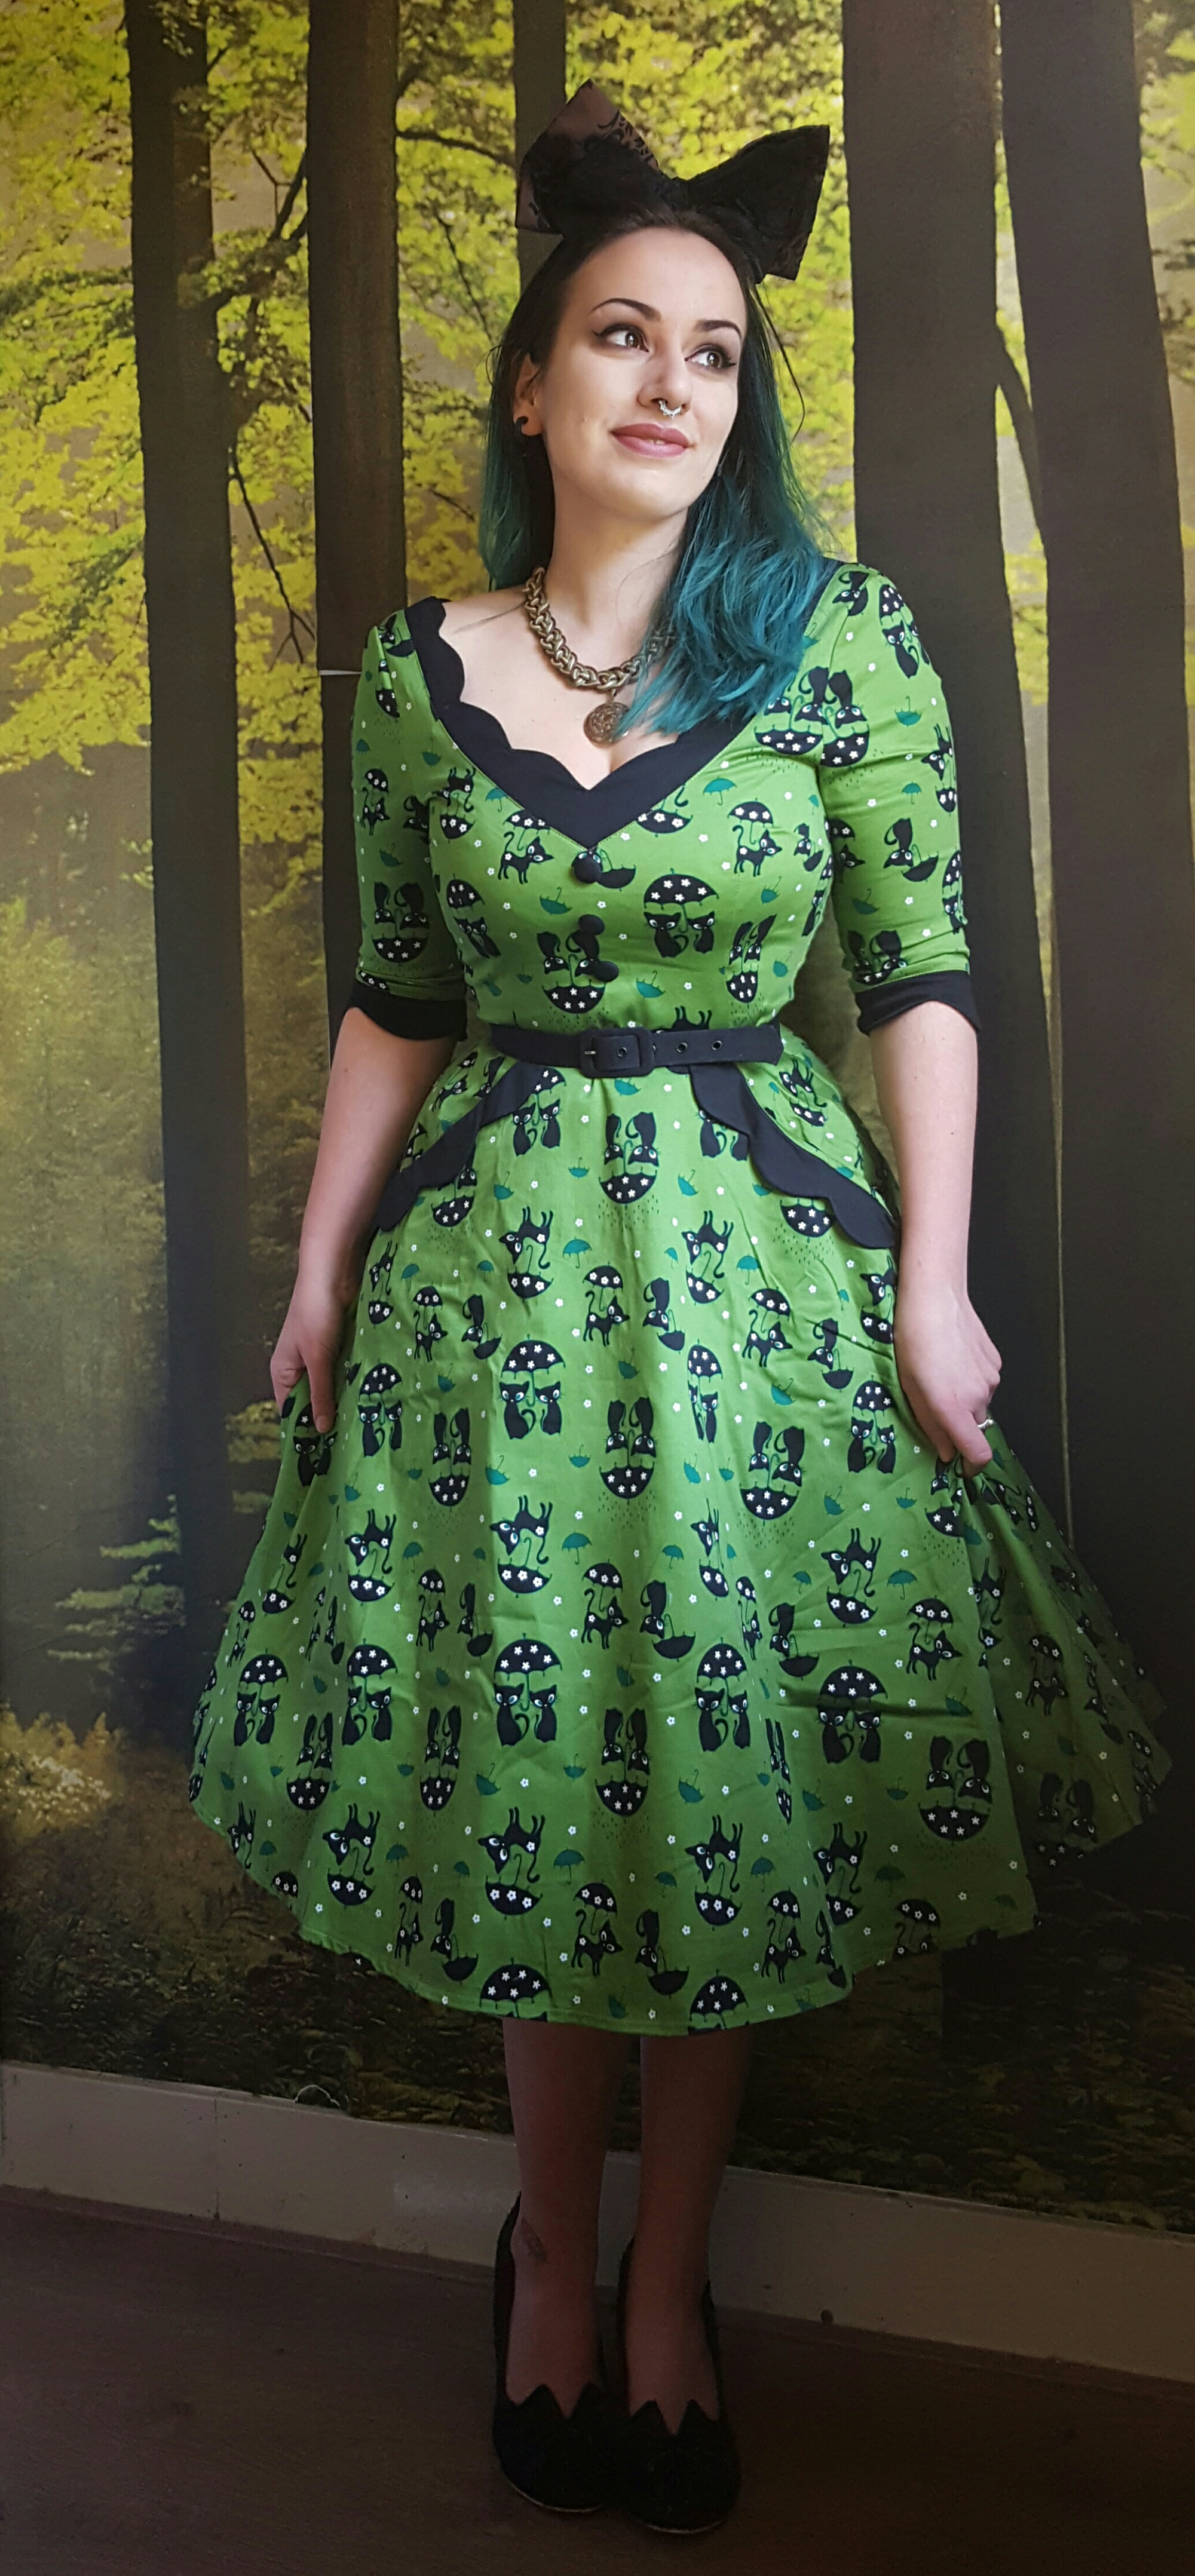 voodoo vixen jade cat swing dress in green fashion and fairytales i decided to pair it a black belt for some extra definition at the waist black heels and a big bow in my hair as a subtle nudge to cat ears